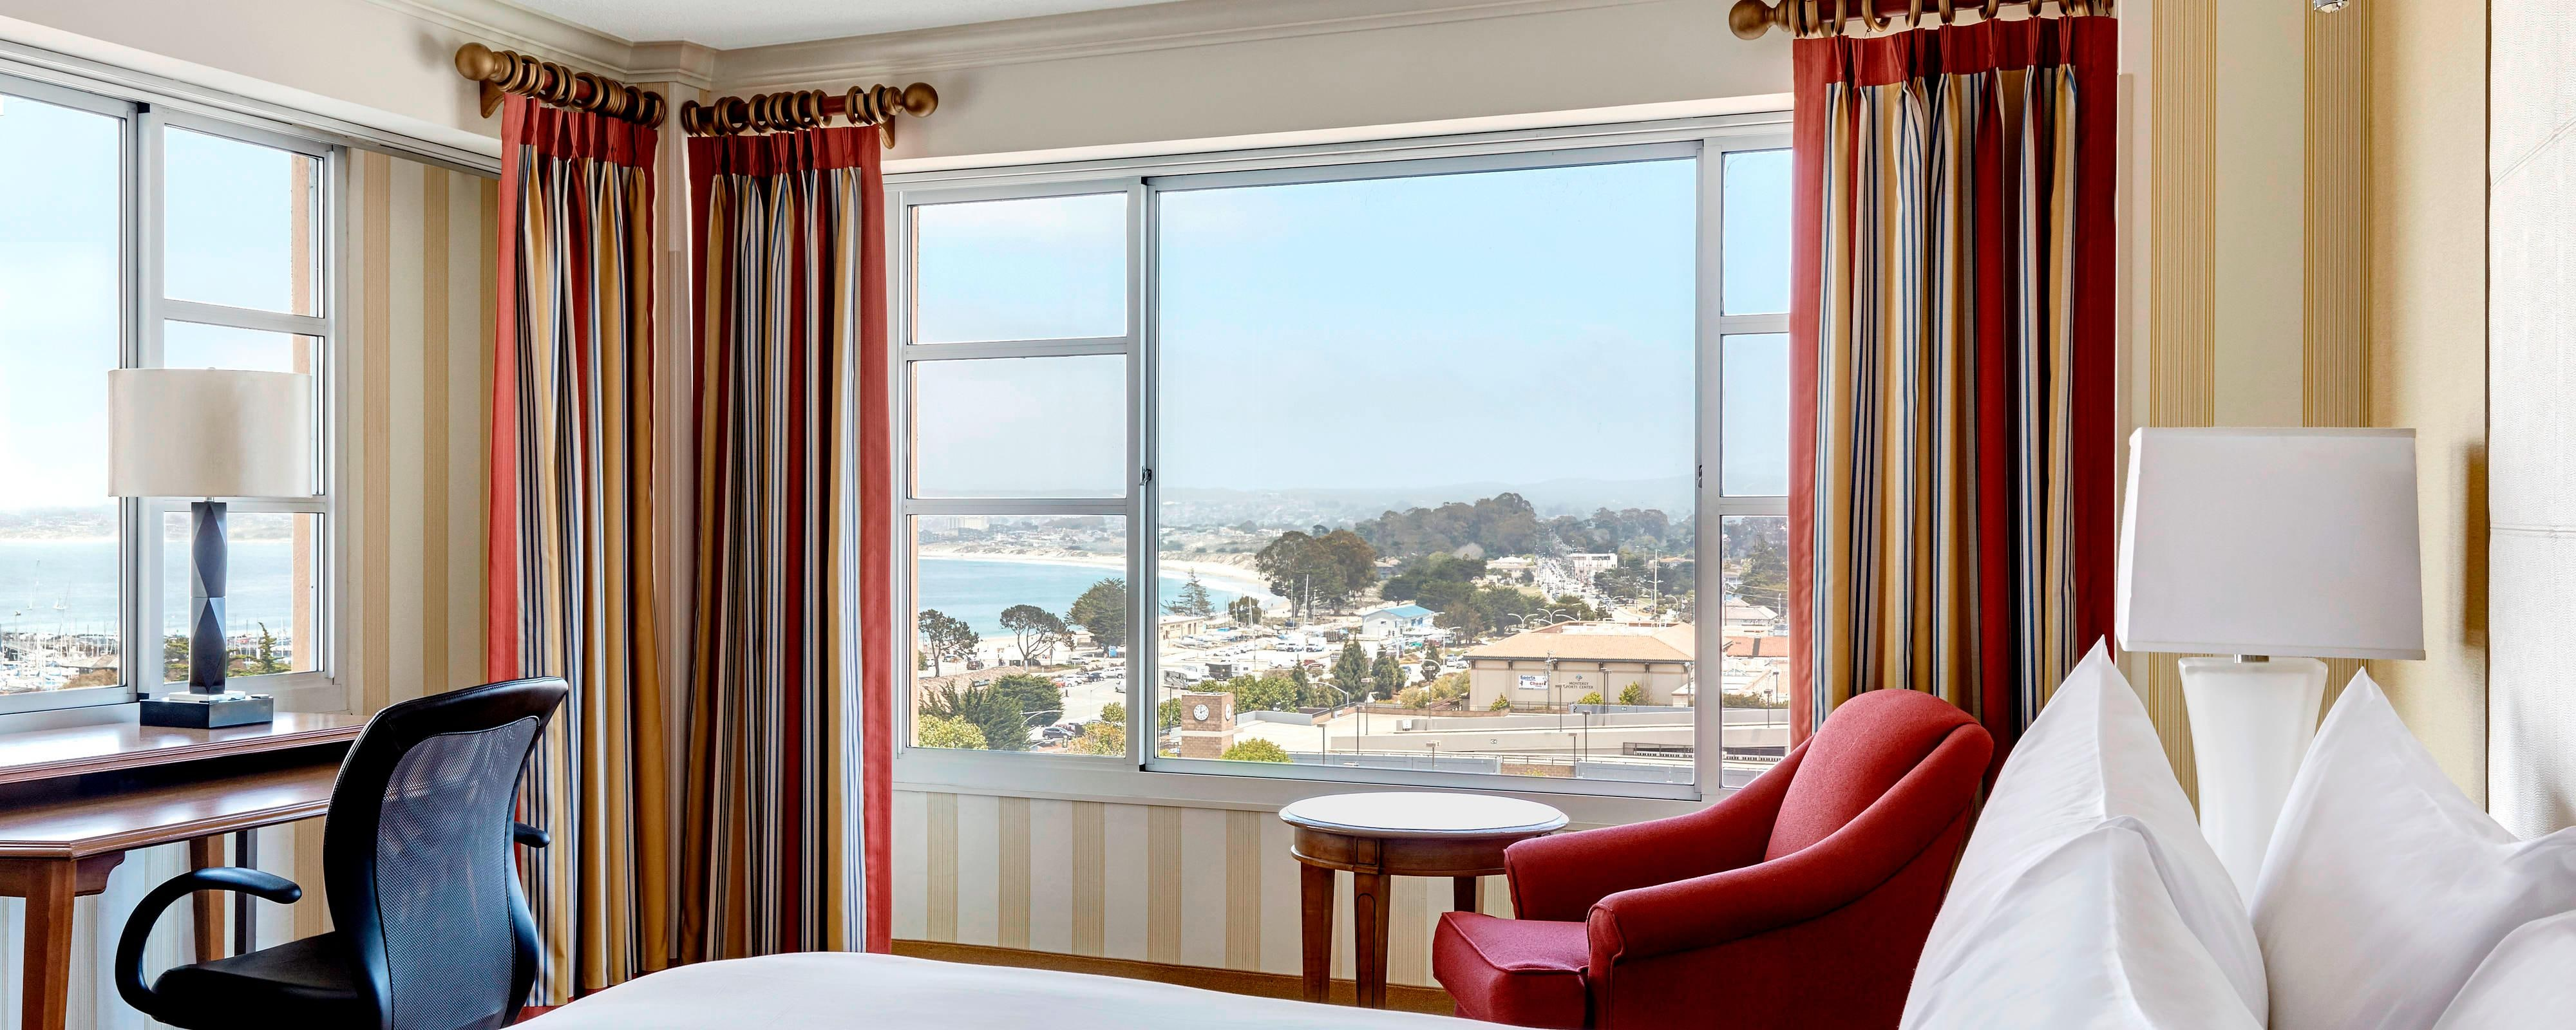 Hotels in Monterey